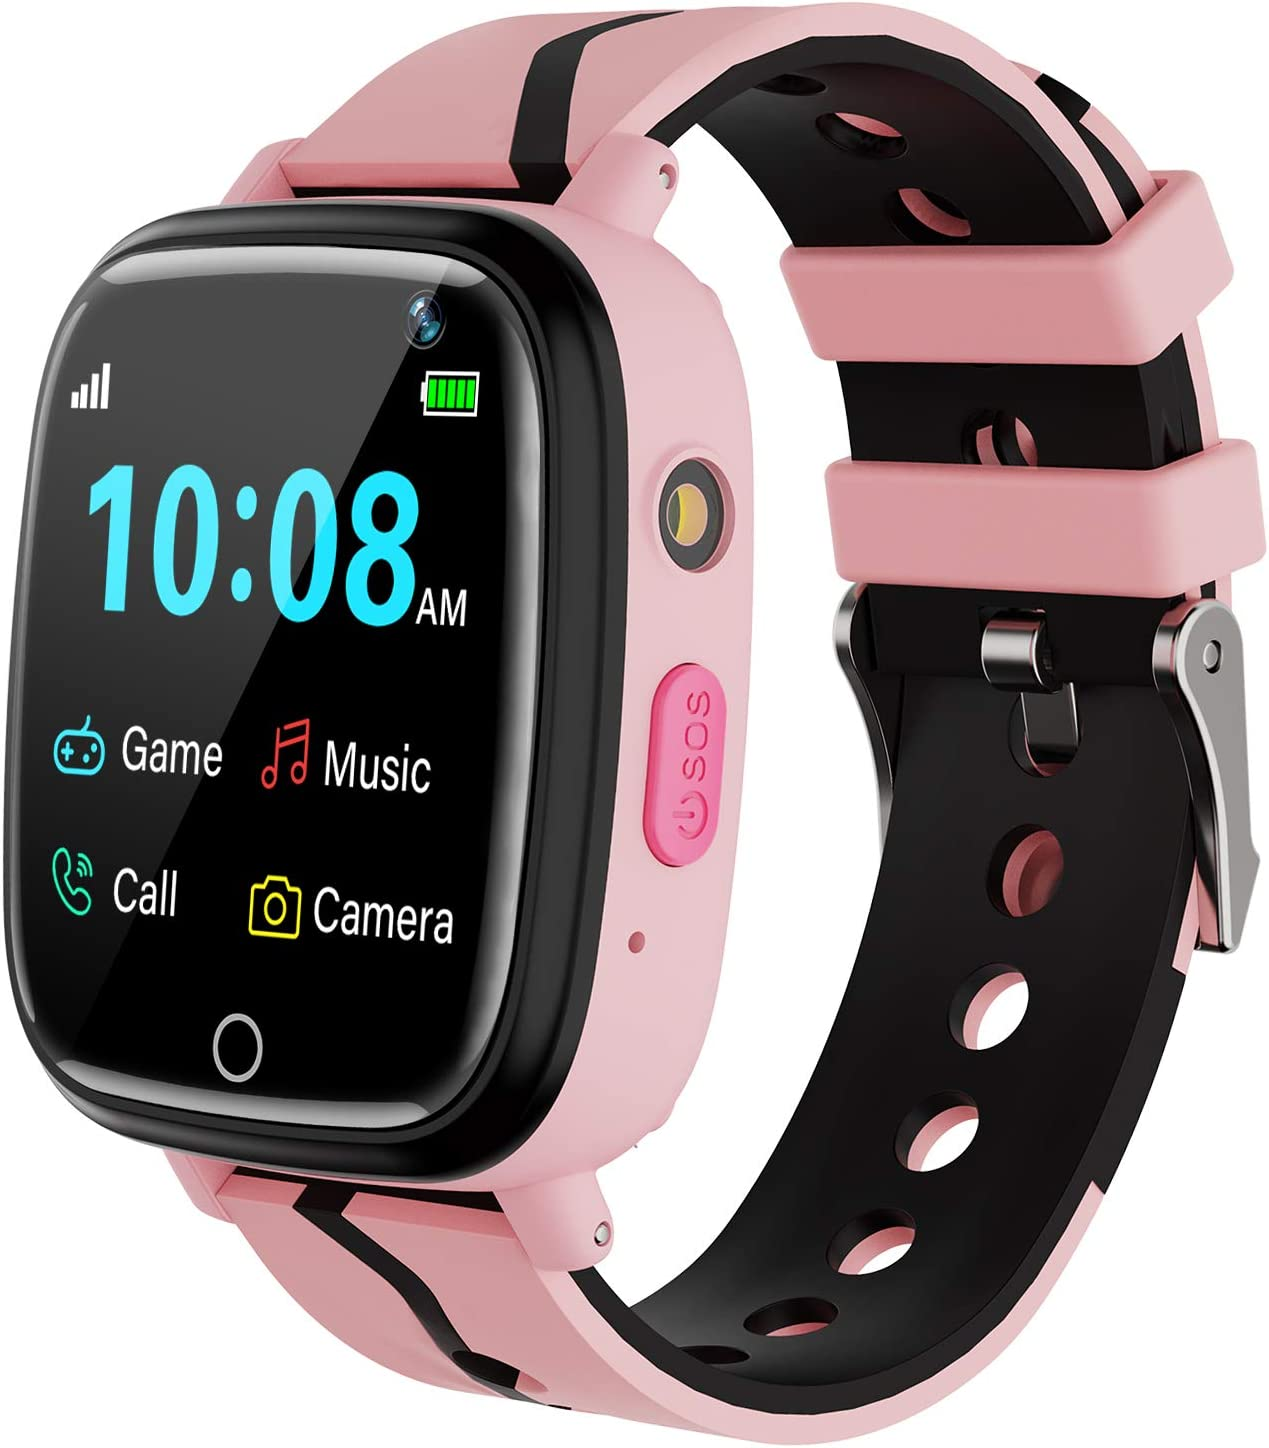 a smartwatch in combination of black and pink for girls